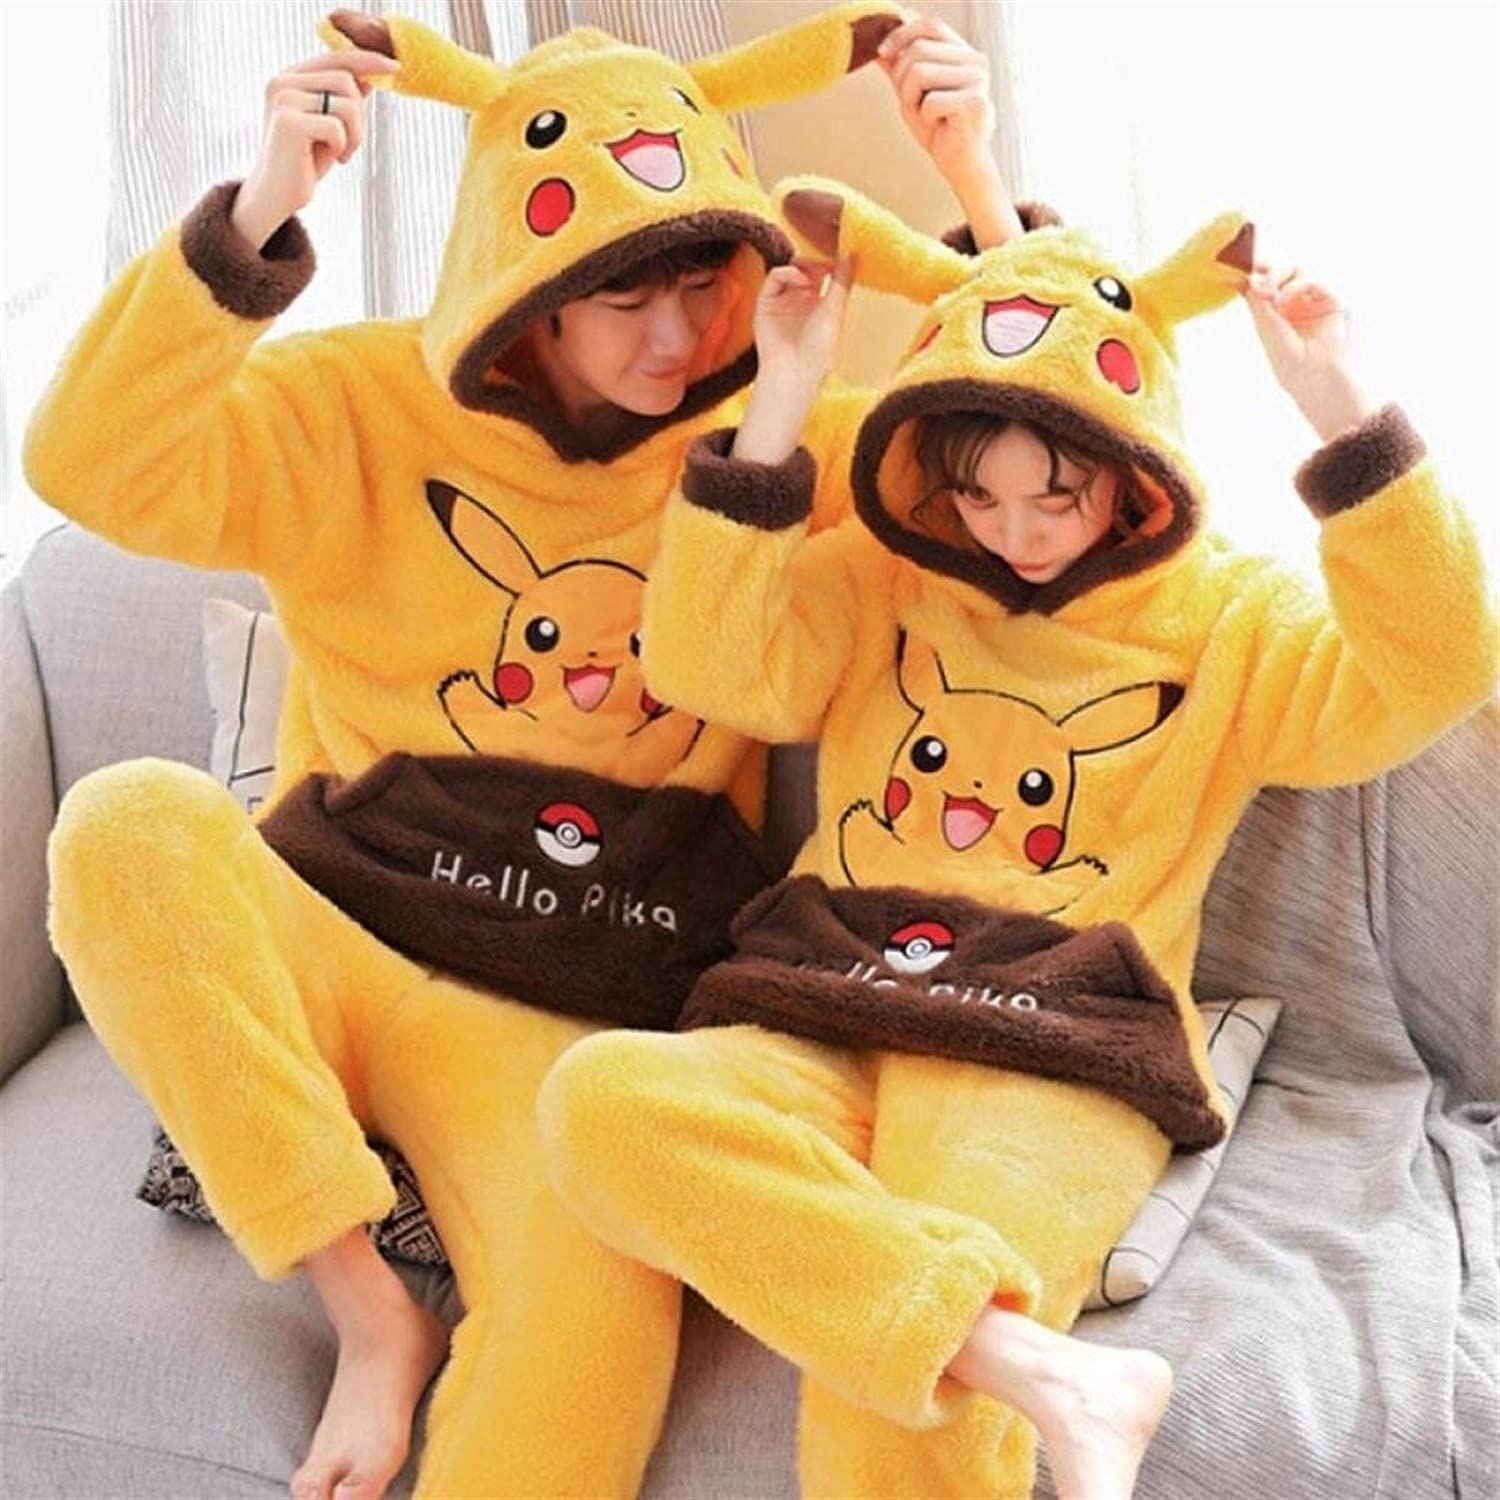 Bayue Christmas Party Unisex Adult Home Clothes Thicken Warm Winter Sleepwear Couples Pajamas Hooded Cute Cartoon Large Size Pijama Zhaozb (Color : Pikachu, Size : Men XXXXL)